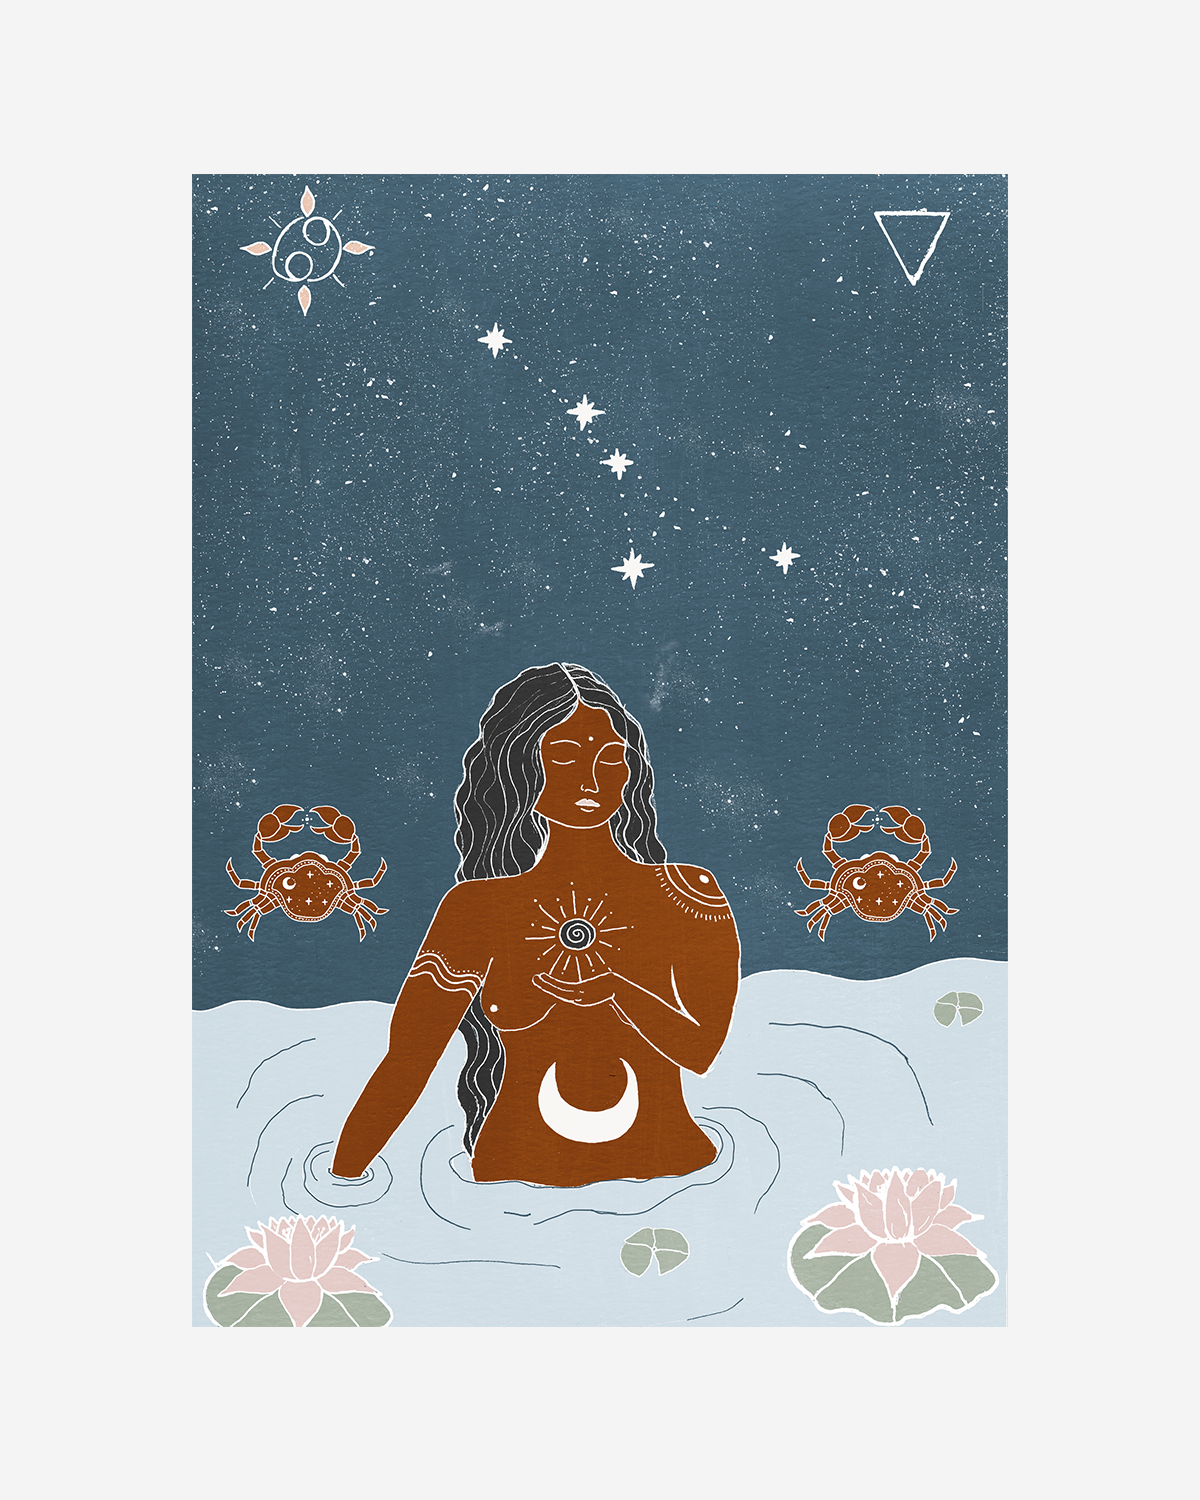 Seeds of Spells x Sisters Village 'Cancer' Print